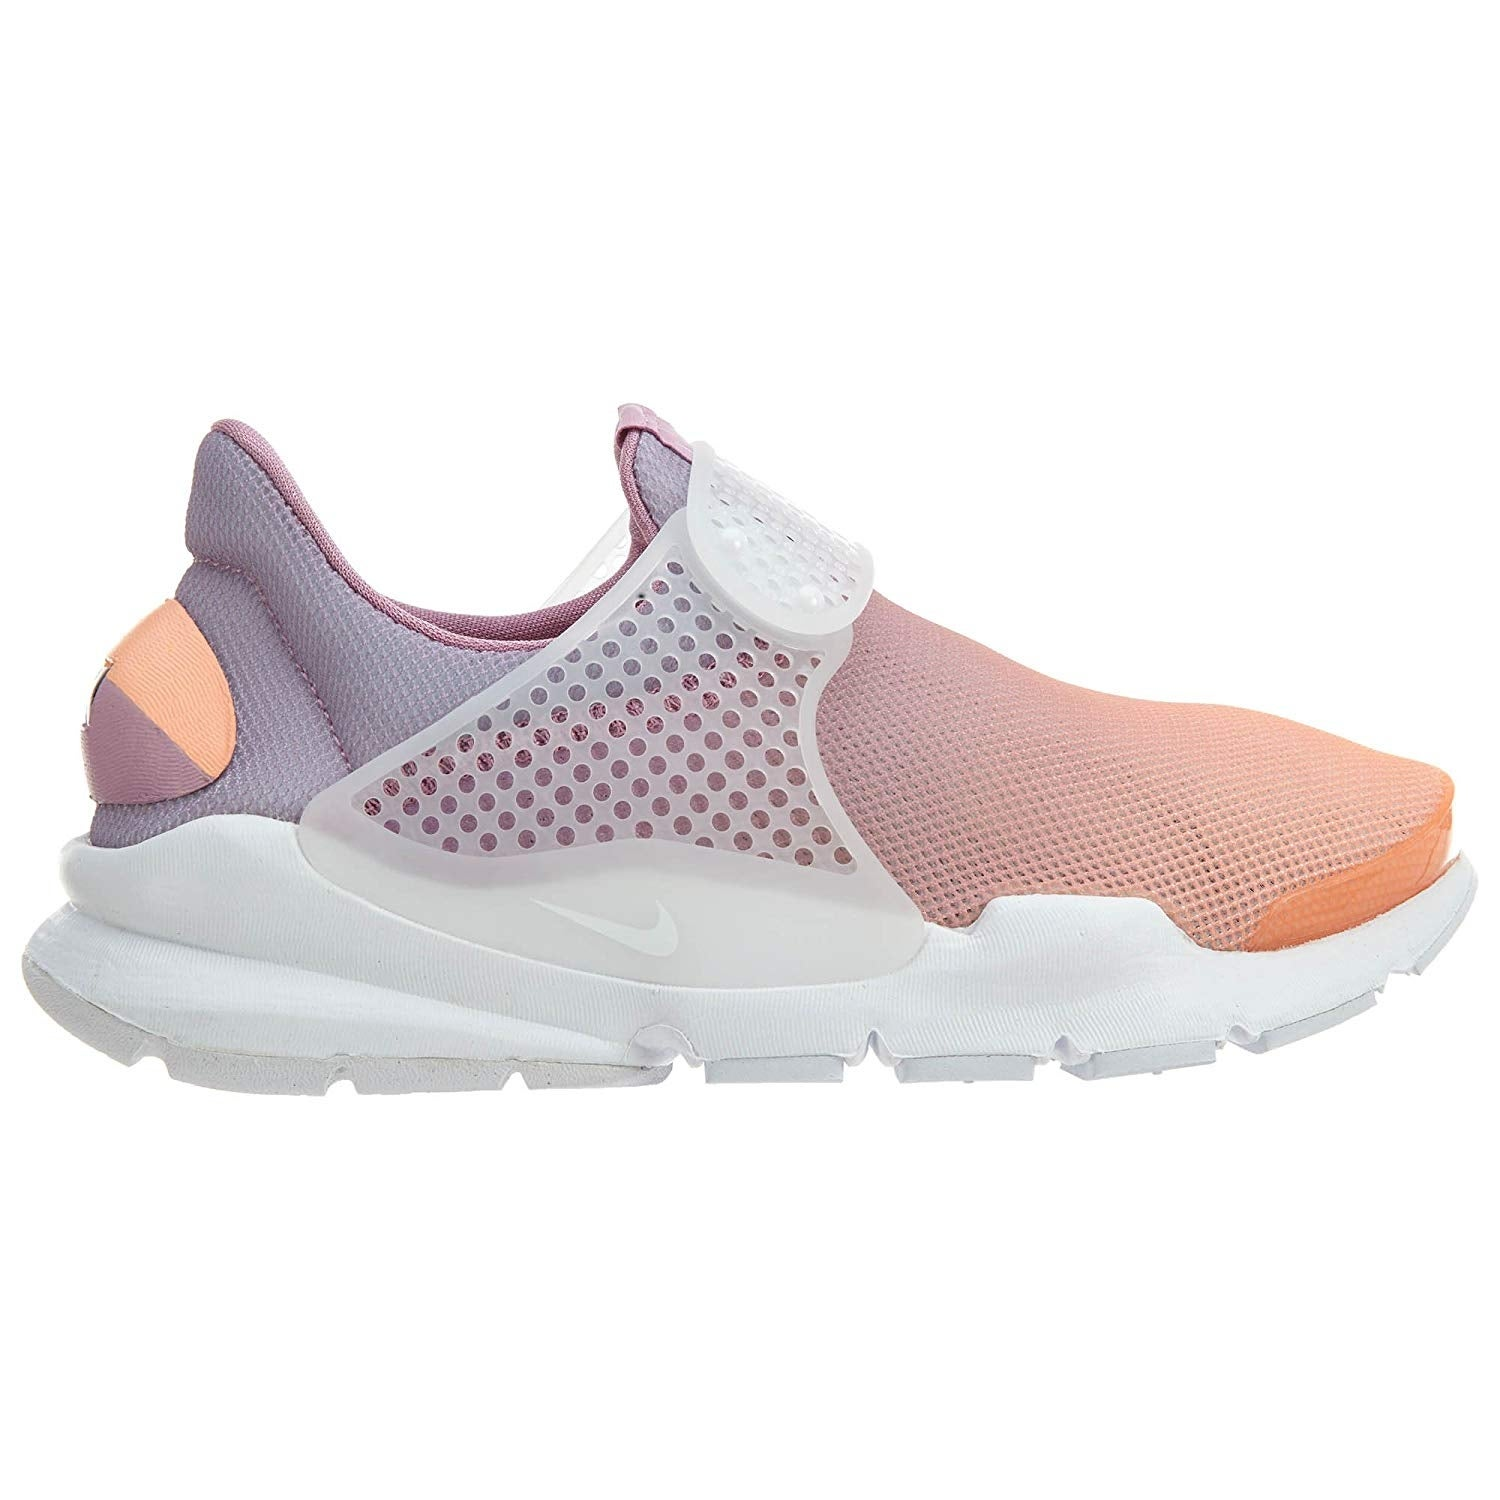 timeless design 51624 56ccd Shop Nike Womens Sock Dart Br Low Top Slip On Running Sneaker - Free  Shipping Today - Overstock - 25755472